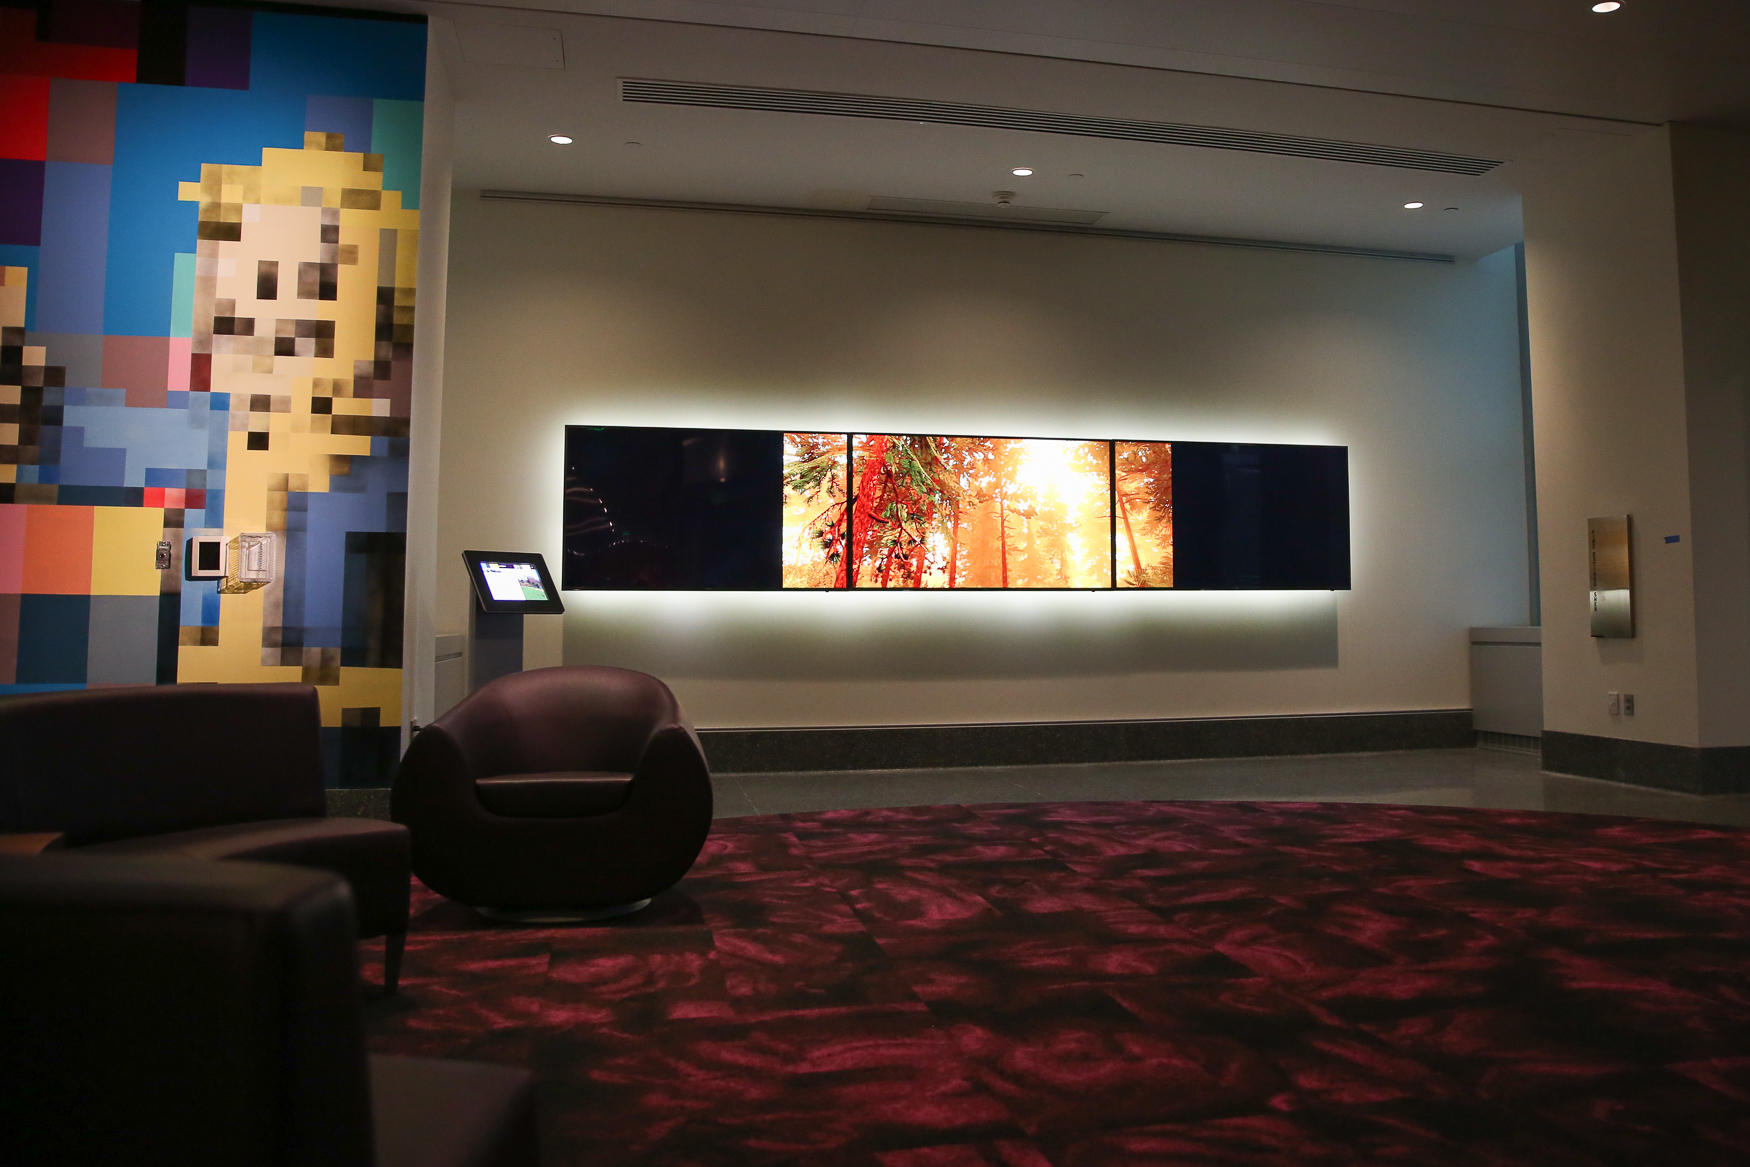 There are two installations of video game landscapes, where visitors can see how America inspires video game designers. (Amanda Andrade-Rhoades/DC Refined)